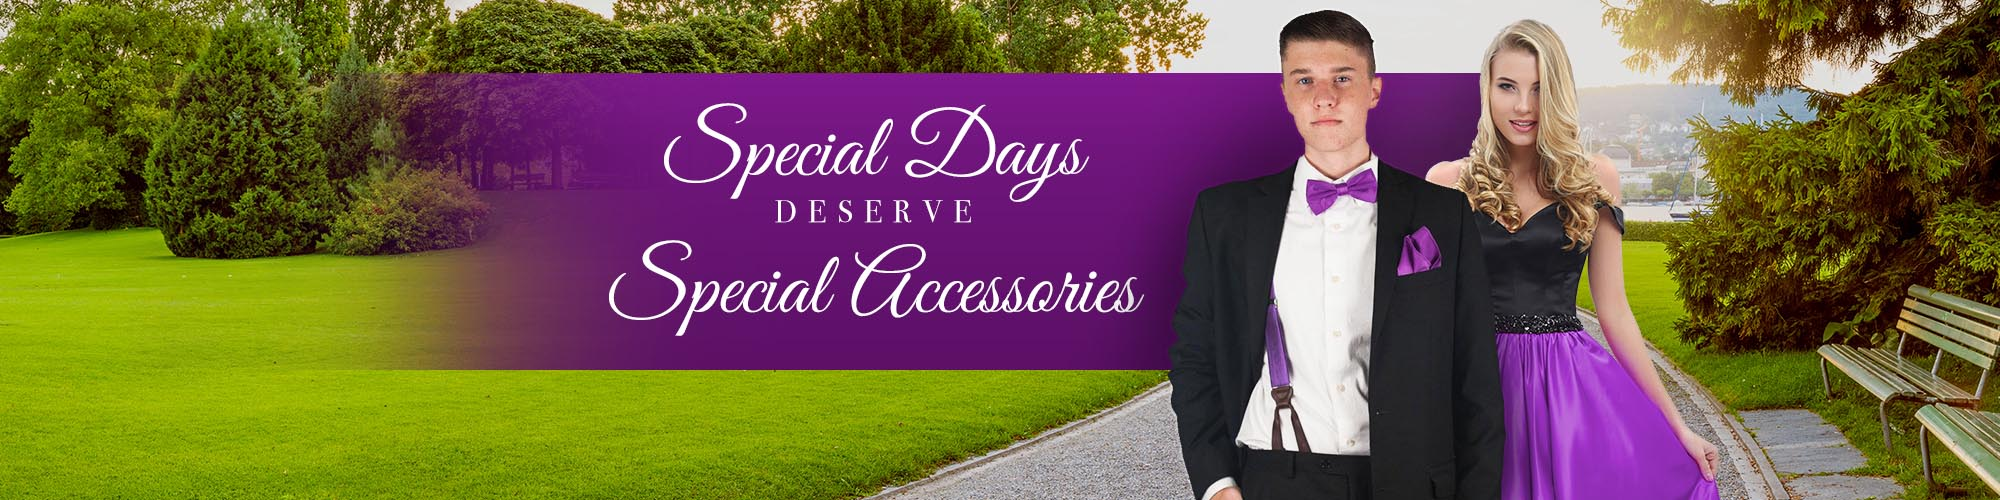 special-days-2018-1